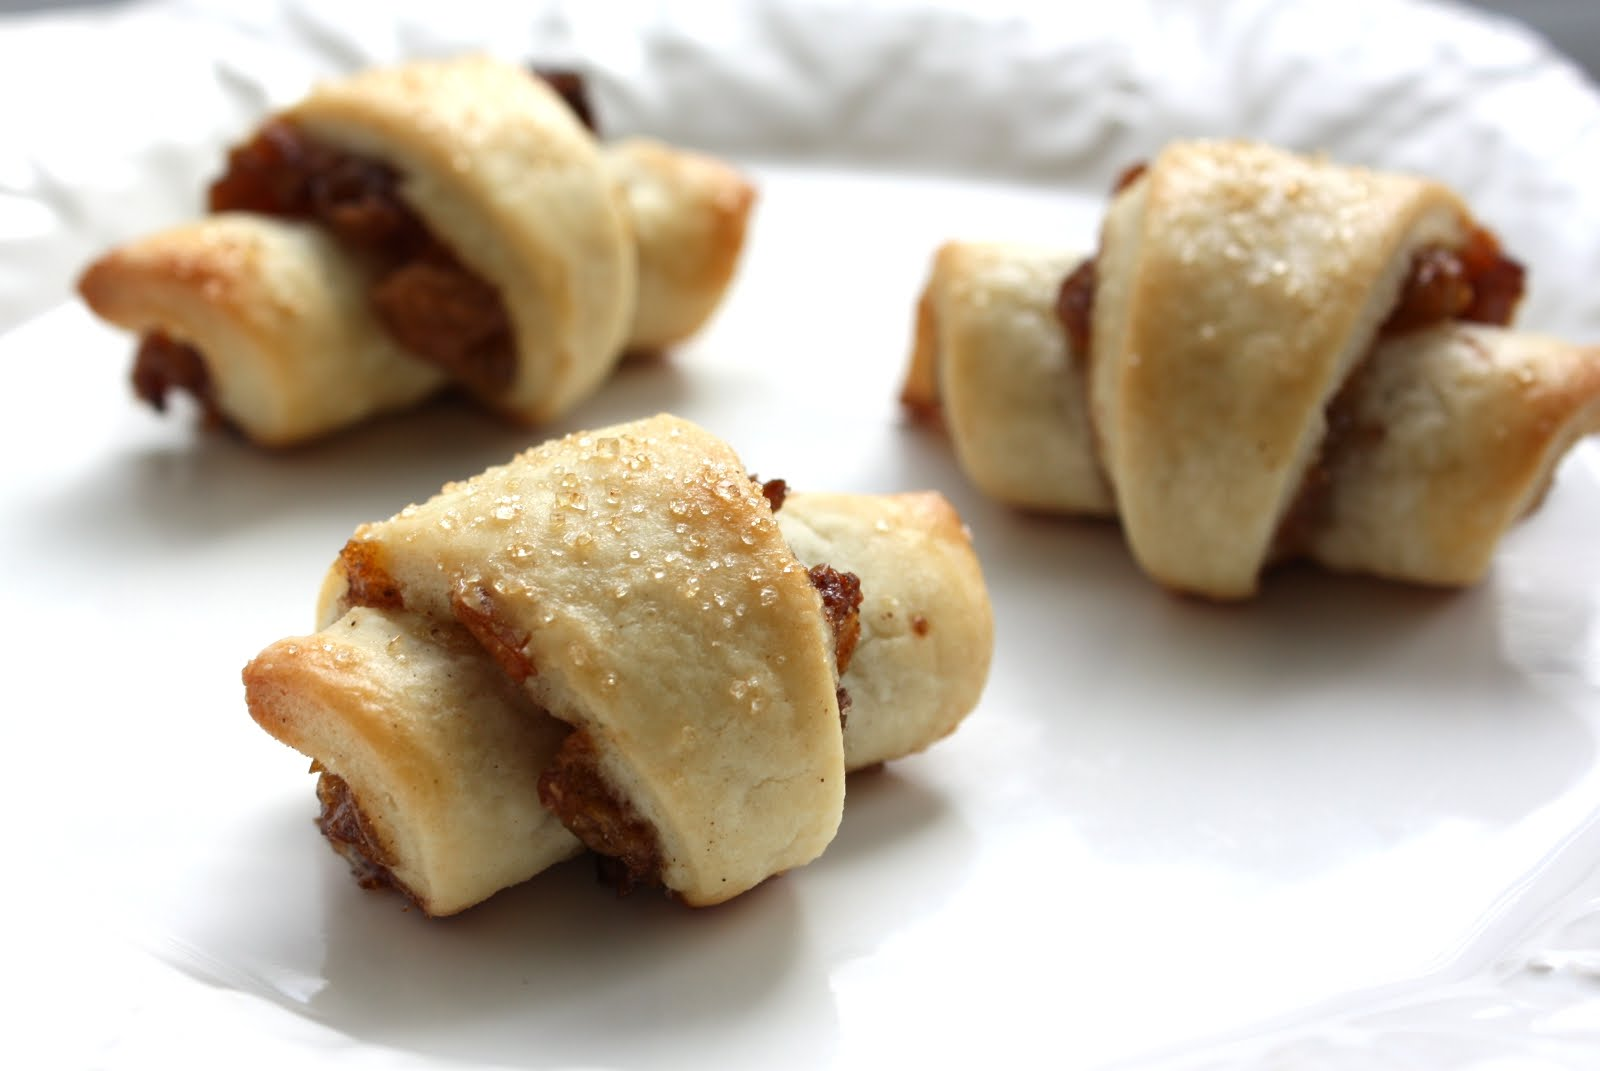 Cee in the Kitchen: rugelach